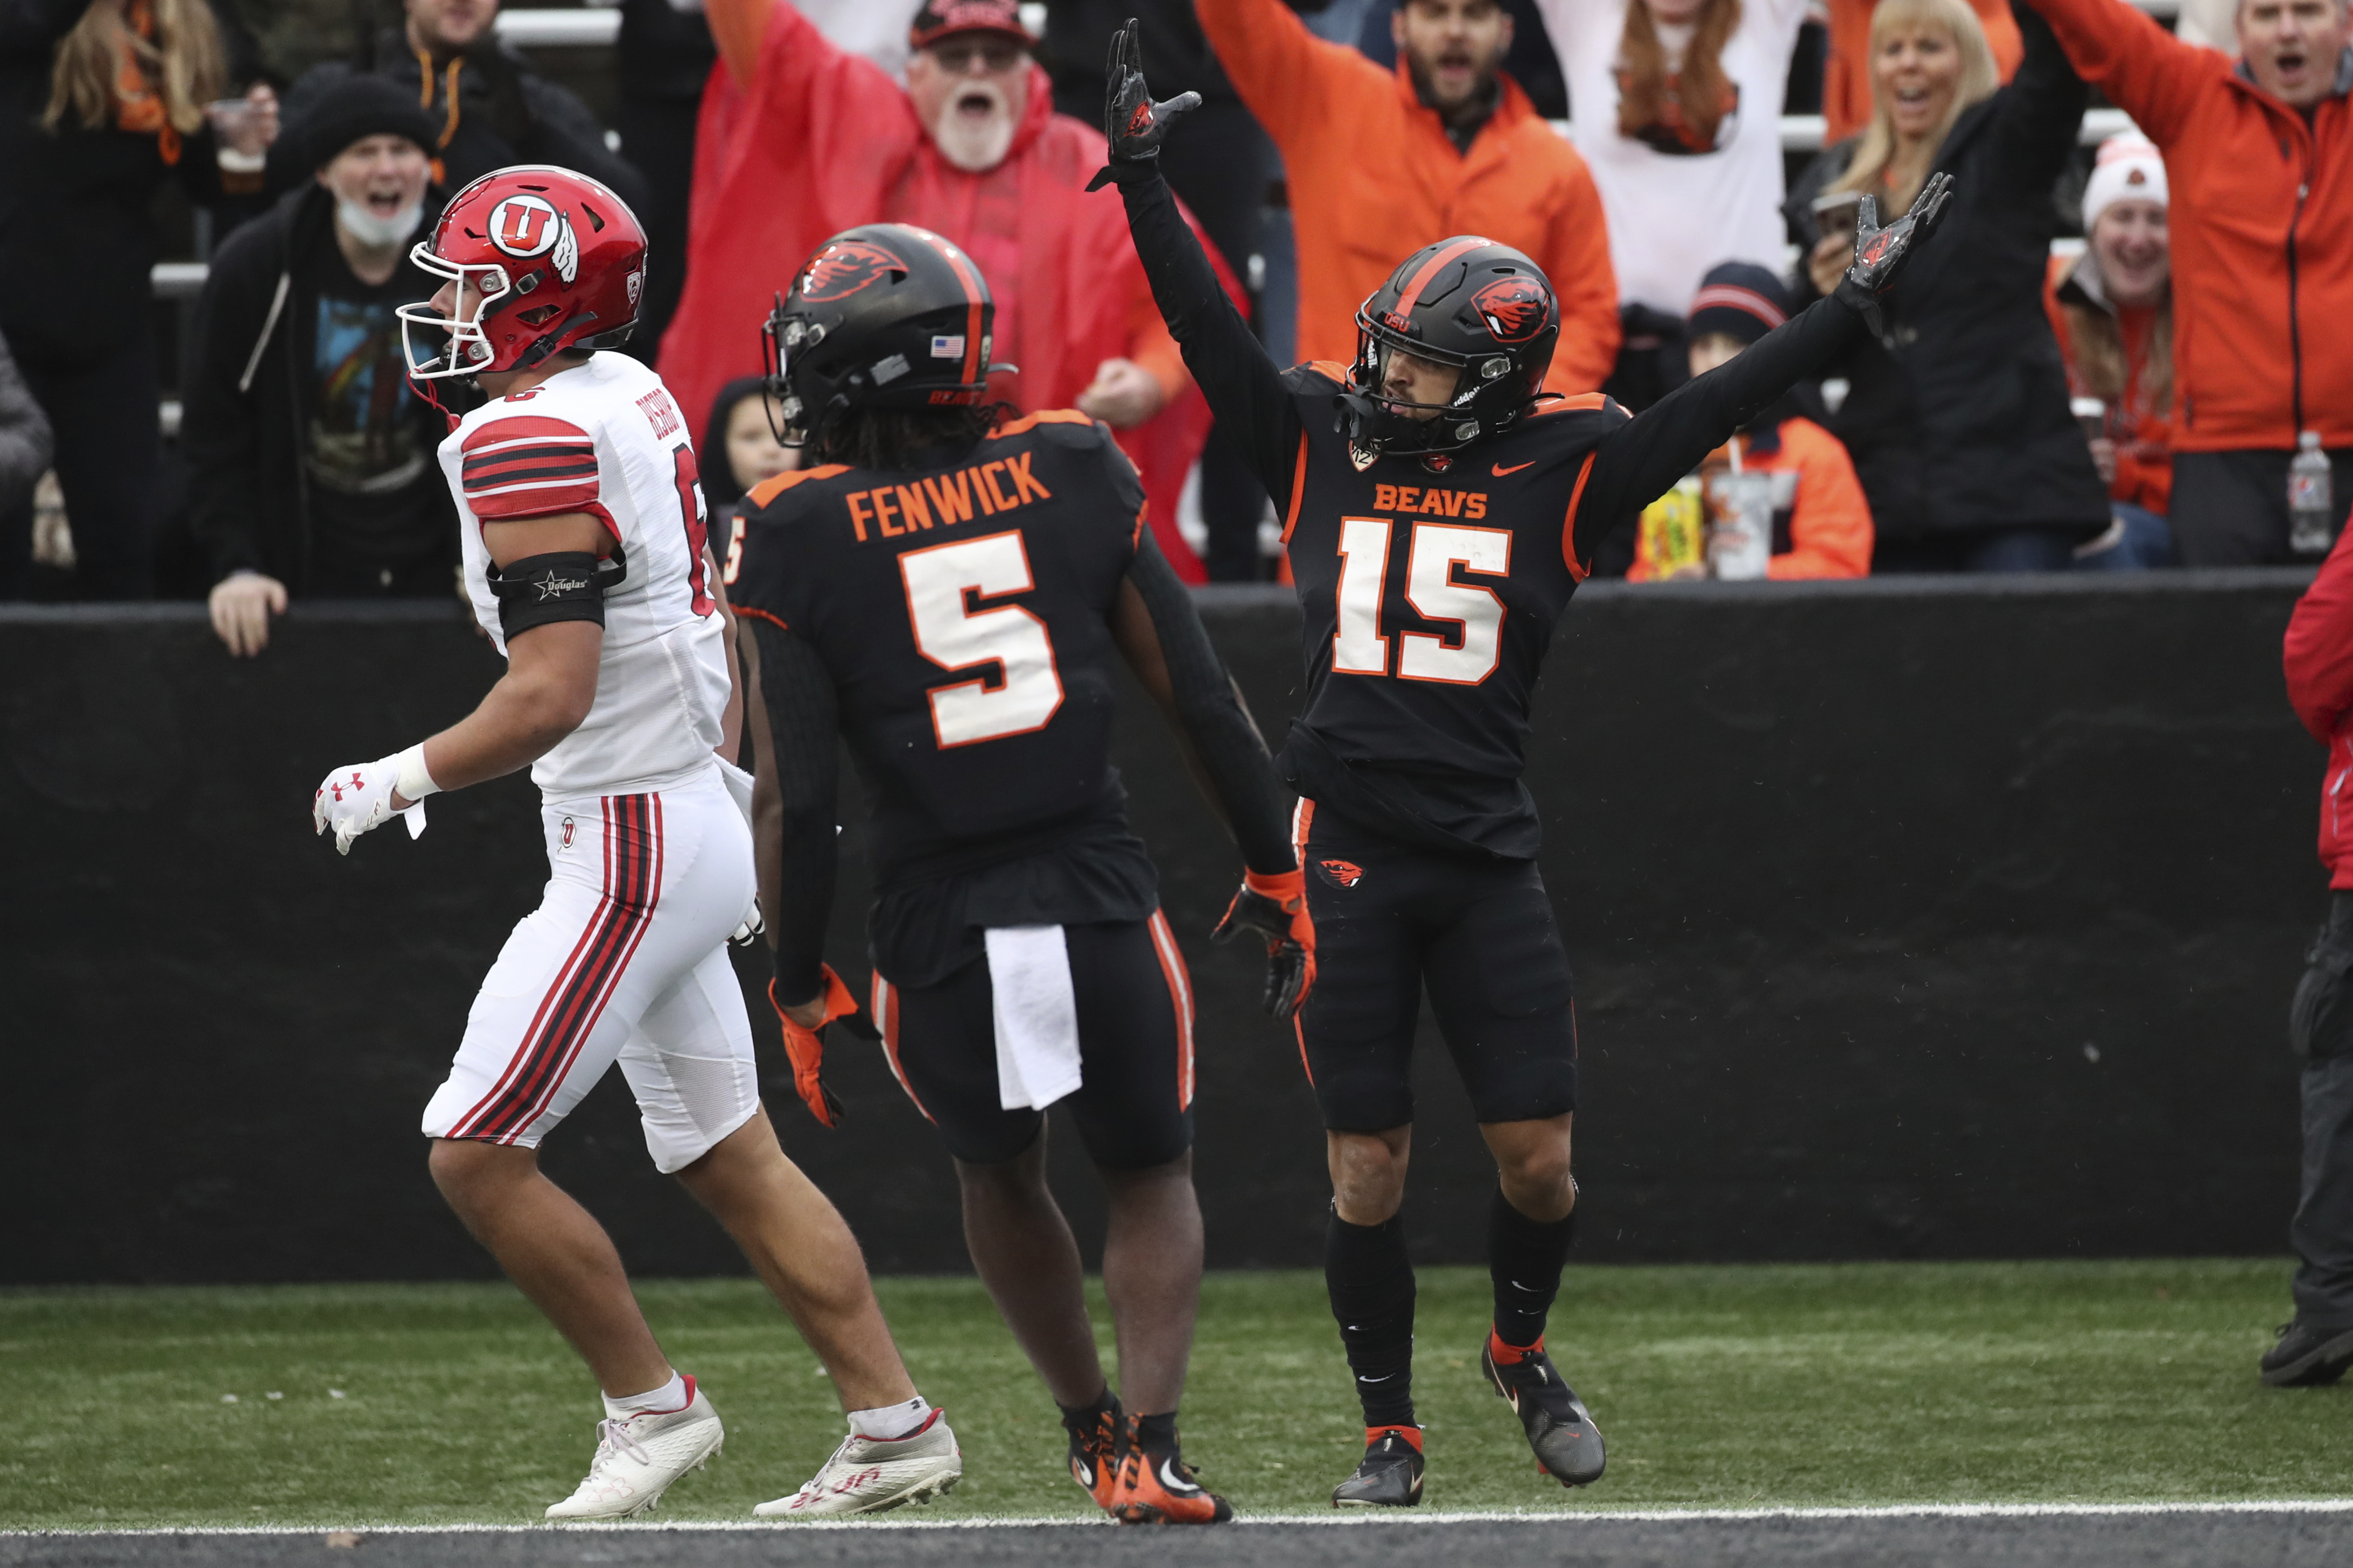 Oregon State wide receiver Anthony Gould (15) celebrates after scoring a touchdown against Utah.